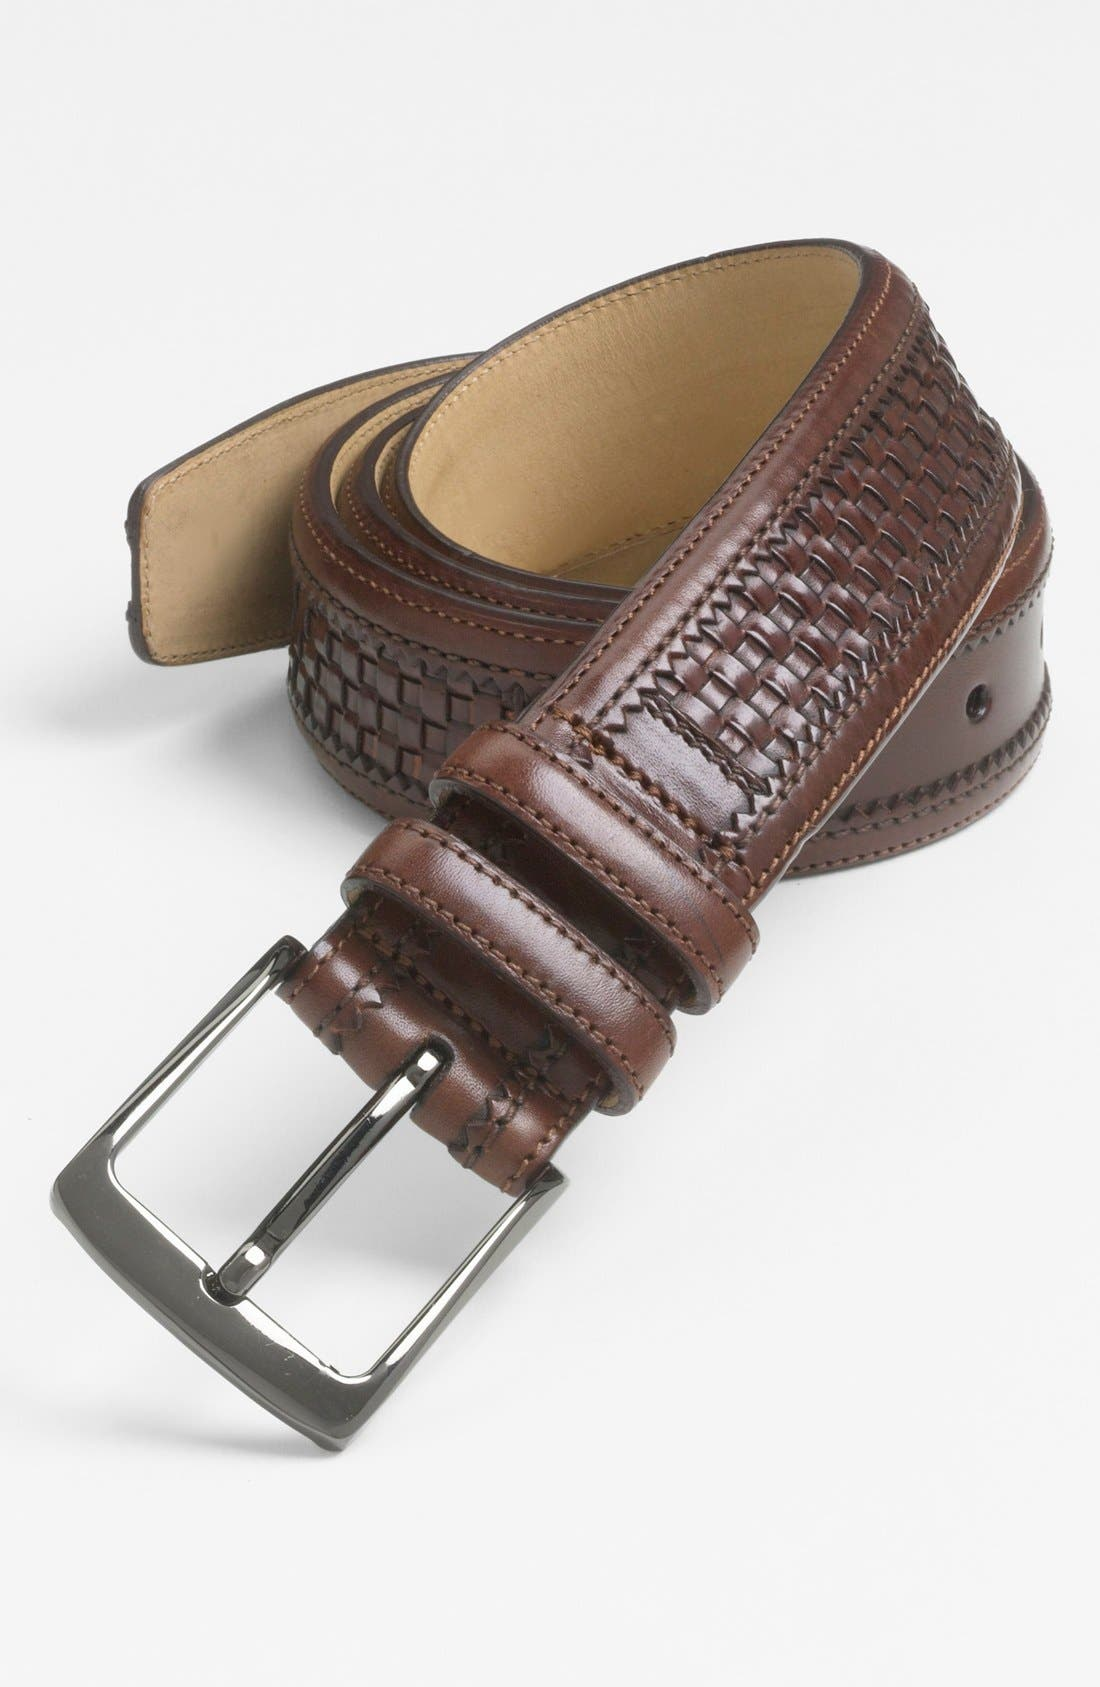 Main Image - Mezlan 'Parma Dama' Woven Leather Belt